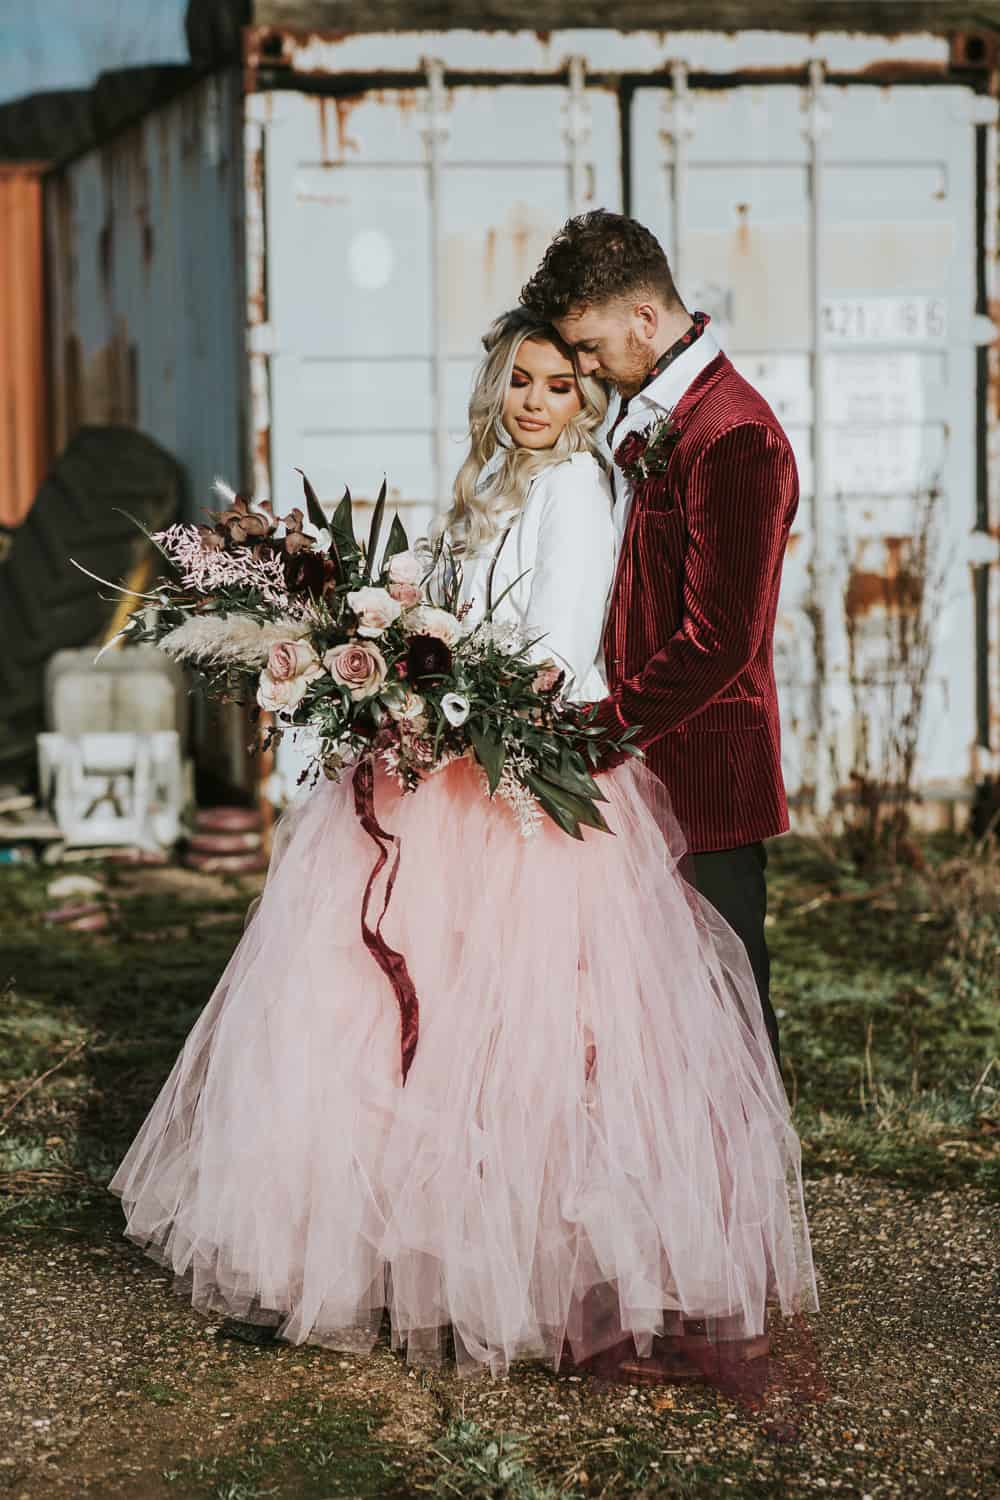 ROMANTIC MOODY ROCK AND ROLL WEDDING INSPIRATION DIY BARN WEDDING VENUE IN NOTTINGHAMSHIRE BURGUNDY COLOUR THEME UNIQUE HOT ROD WEDDING CAR